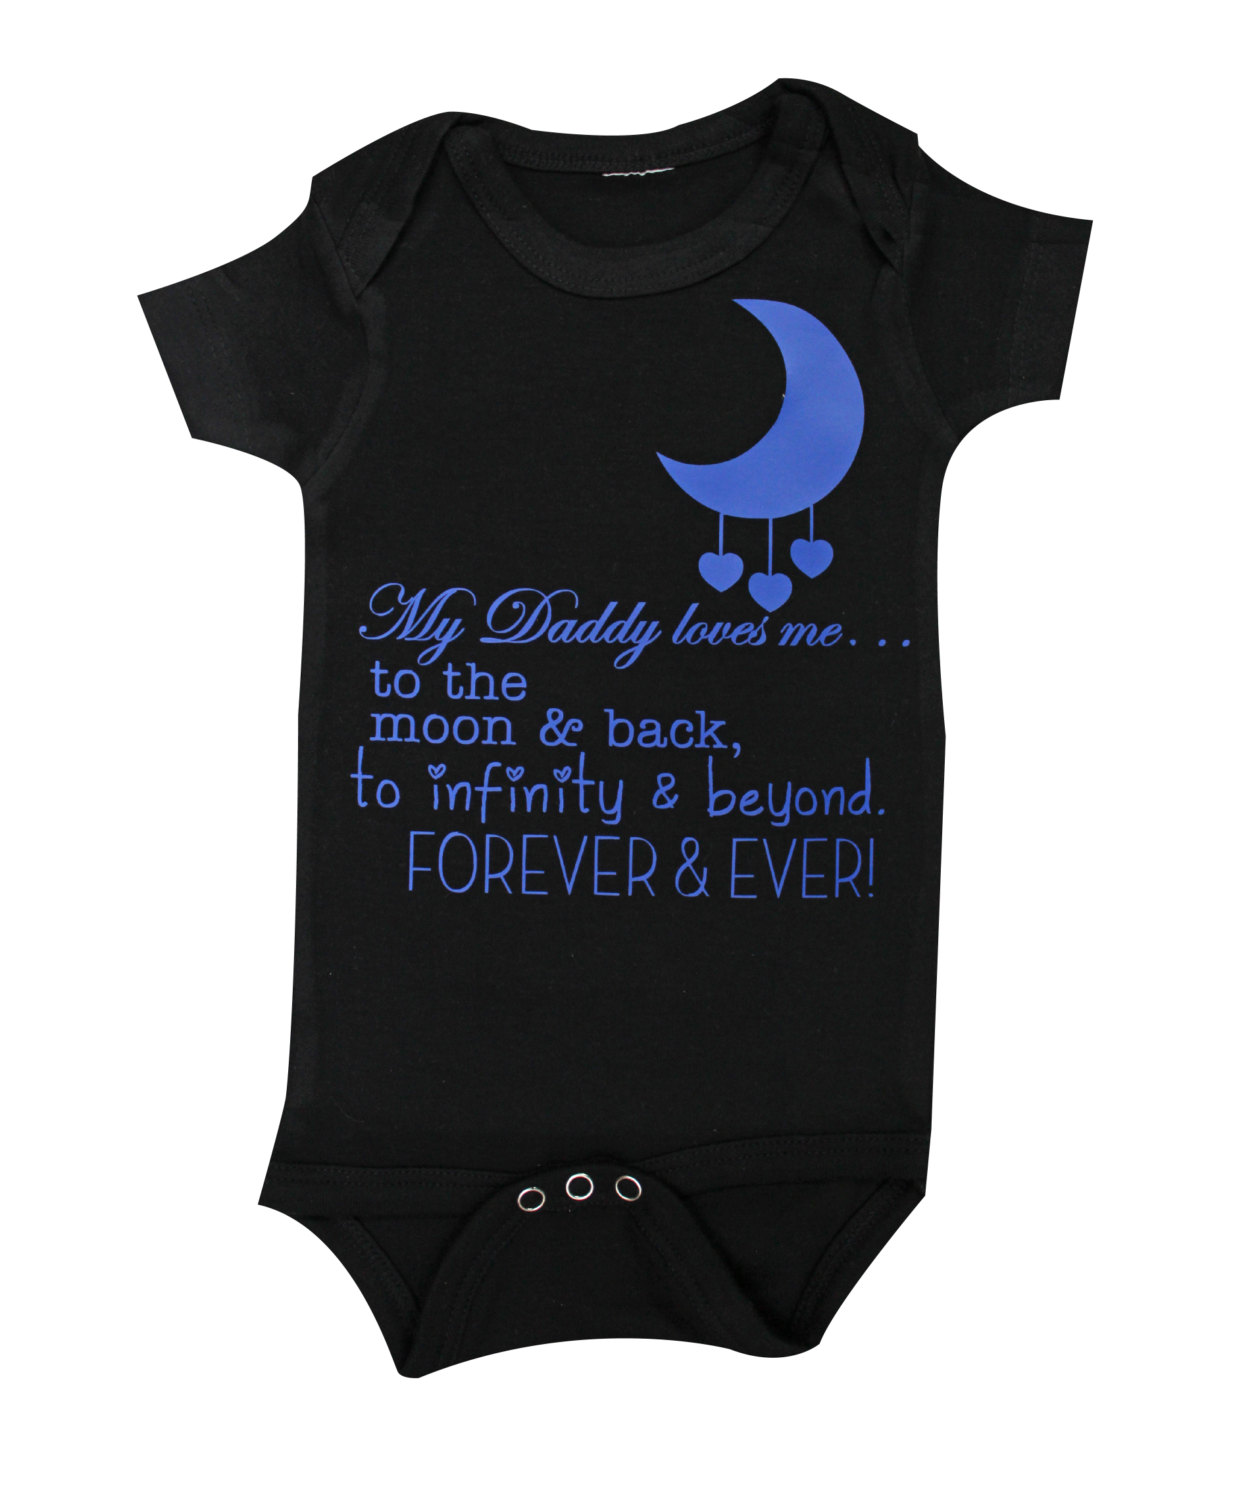 6a0e0717a Daddy loves you to the moon and back forever and ever black baby ...